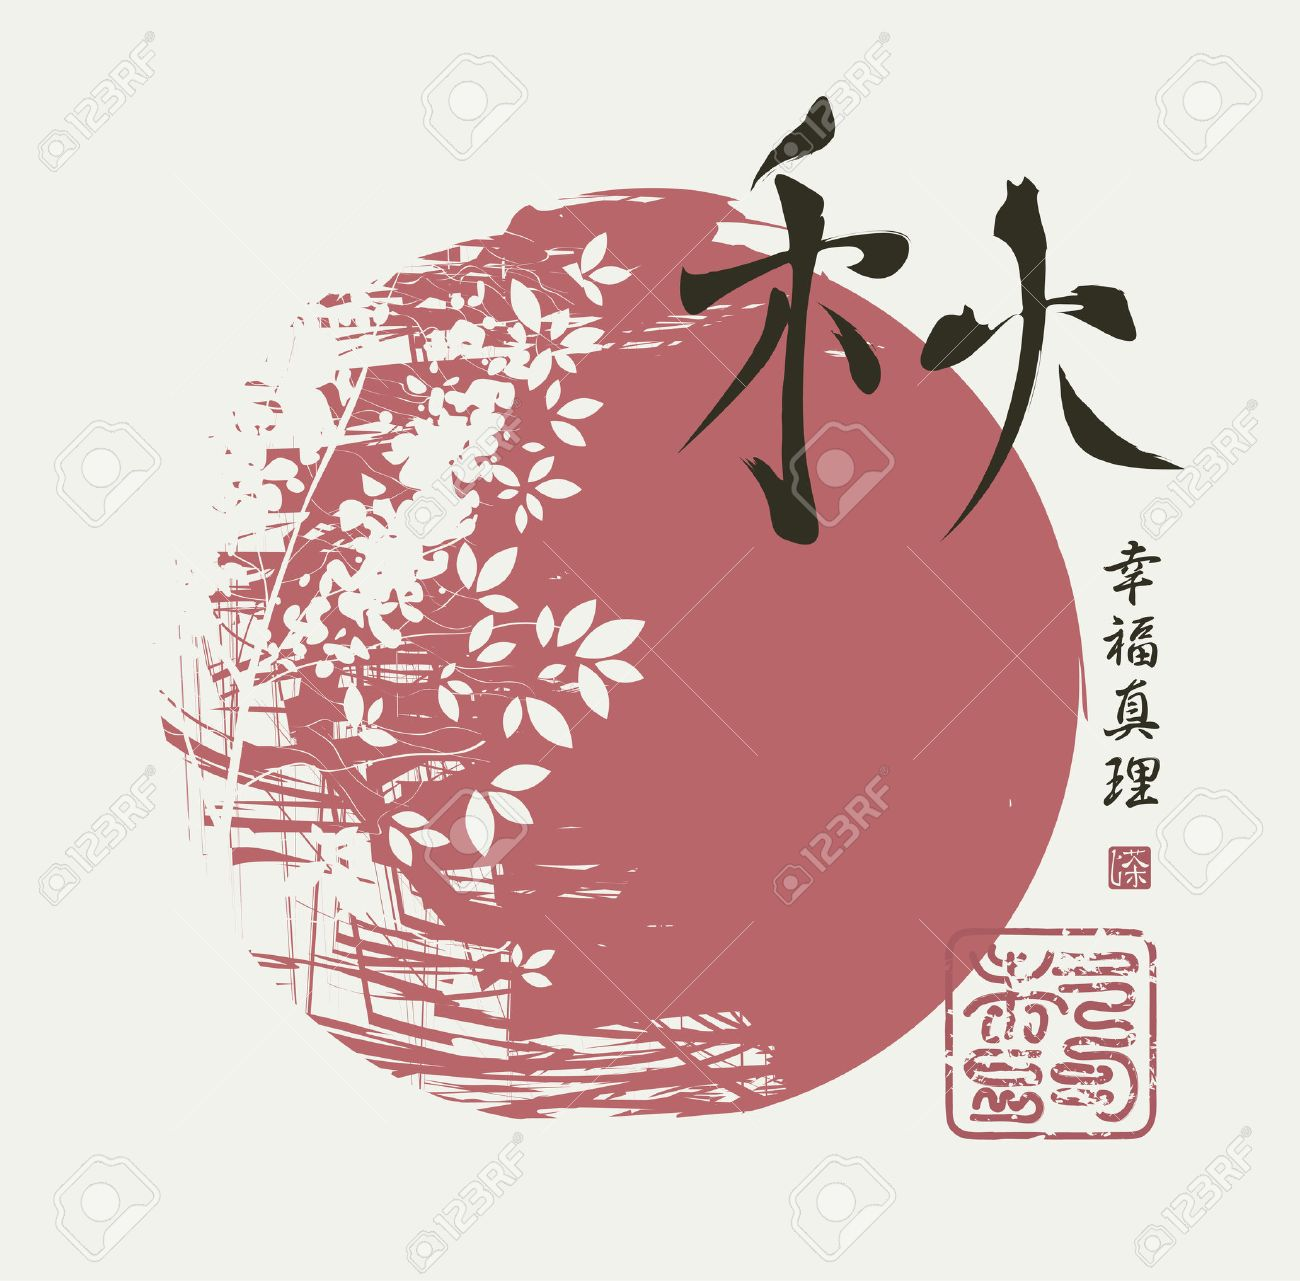 hieroglyph fall and tree against the sun in the Chinese style. Hieroglyph fall, Happiness, Truth - 49965850